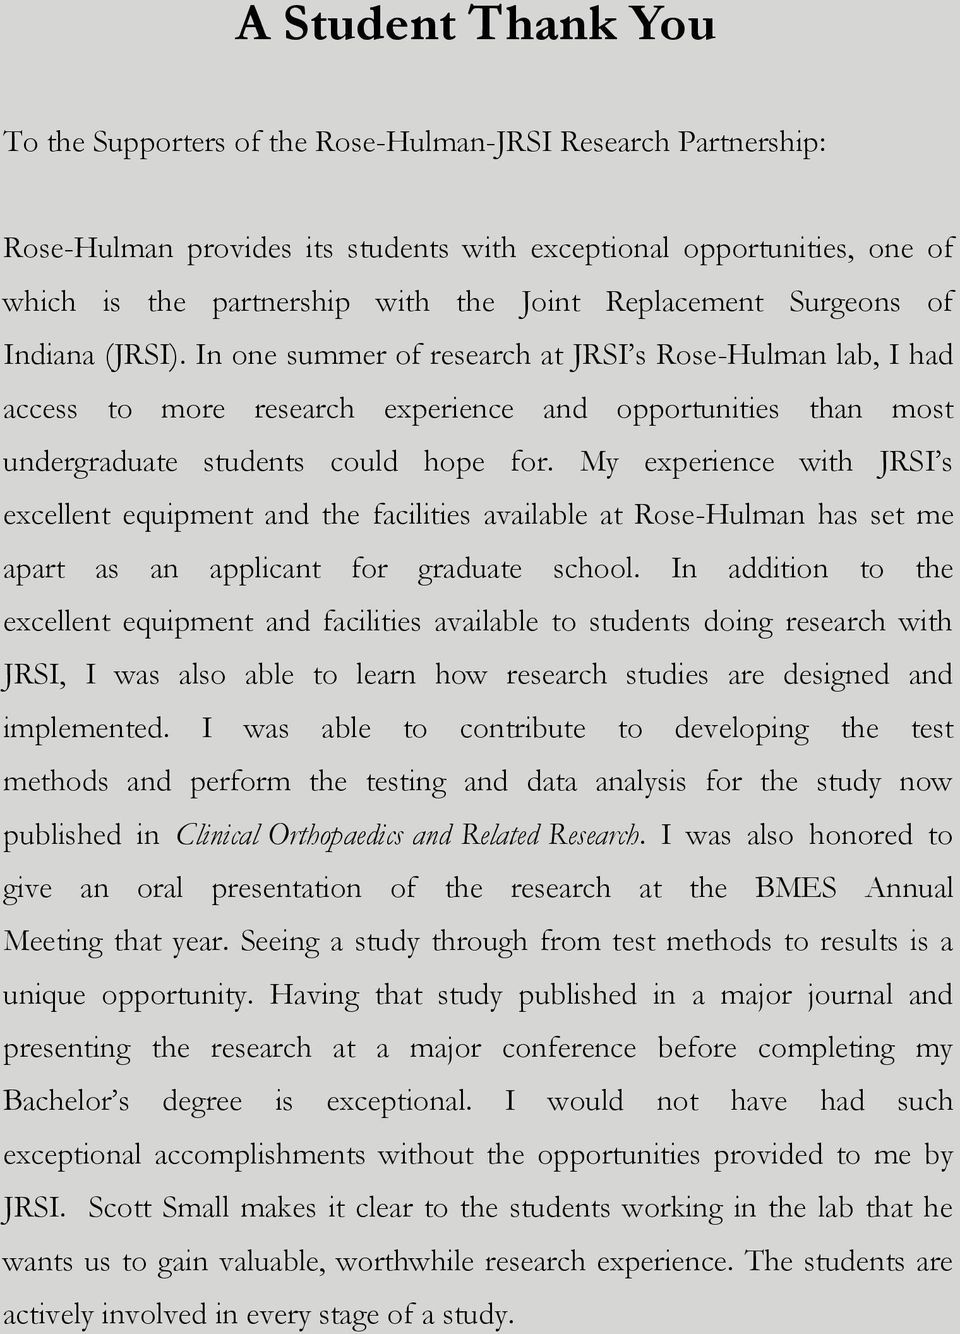 My experience with JRSI s excellent equipment and the facilities available at Rose-Hulman has set me apart as an applicant for graduate school.